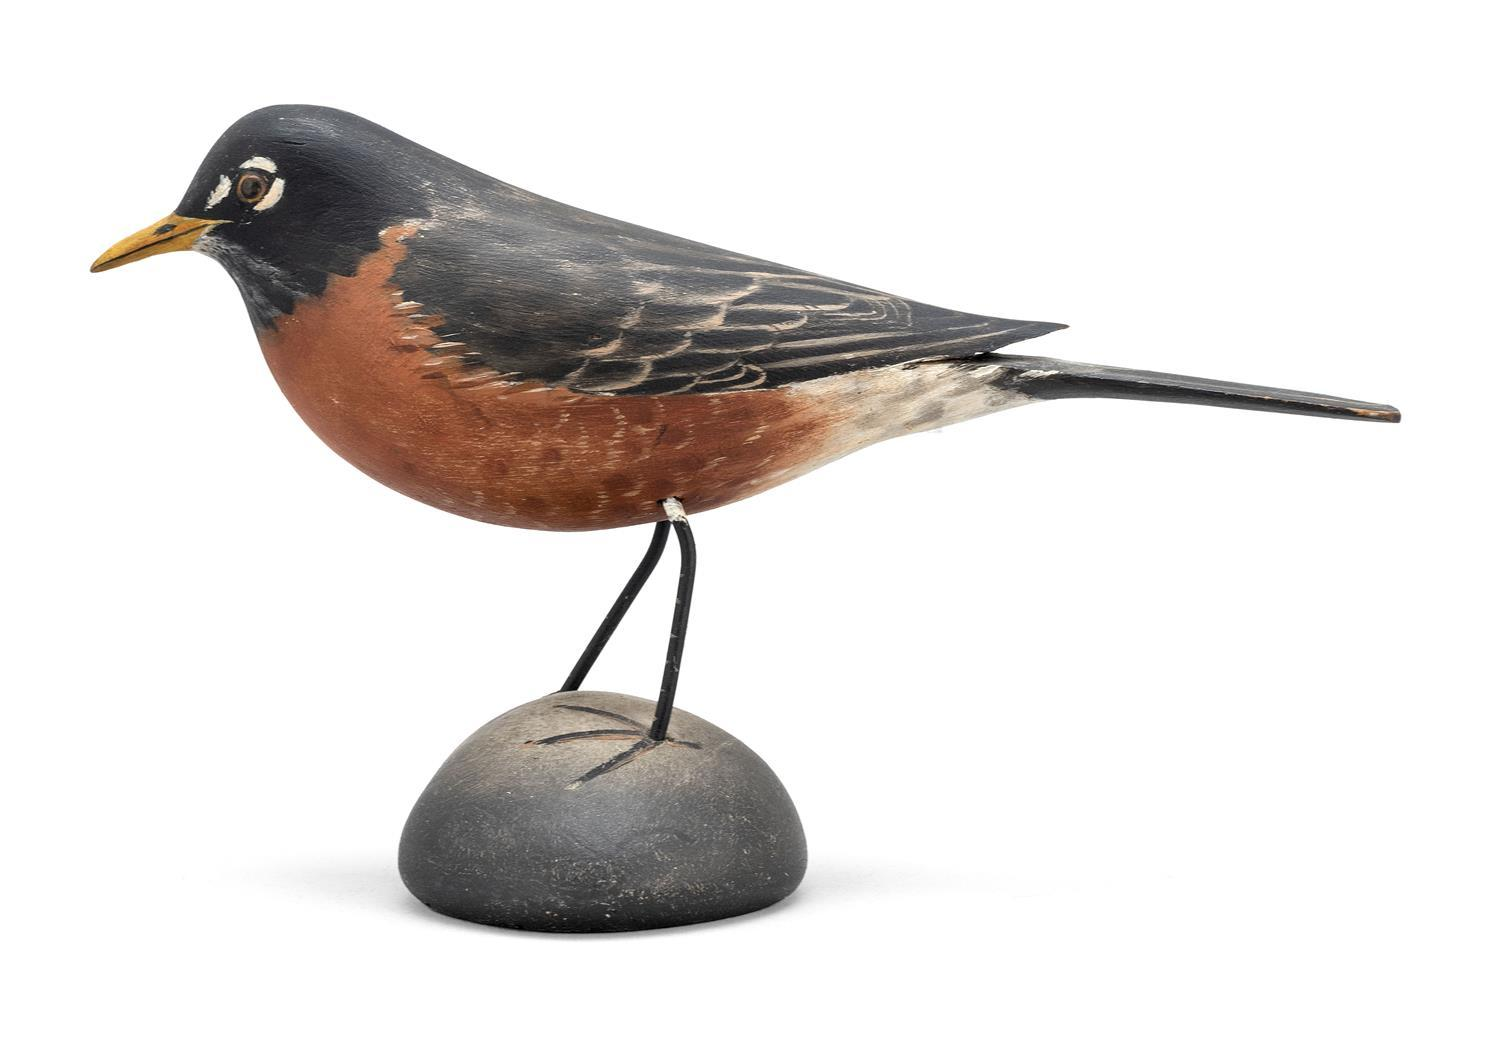 "A. ELMER CROWELL LIFE-SIZE ROBIN Unsigned. Height 5.75"". Length 8.75"". From the Mr. & Mrs. Ken DeLong Collection of Bird Carvings."